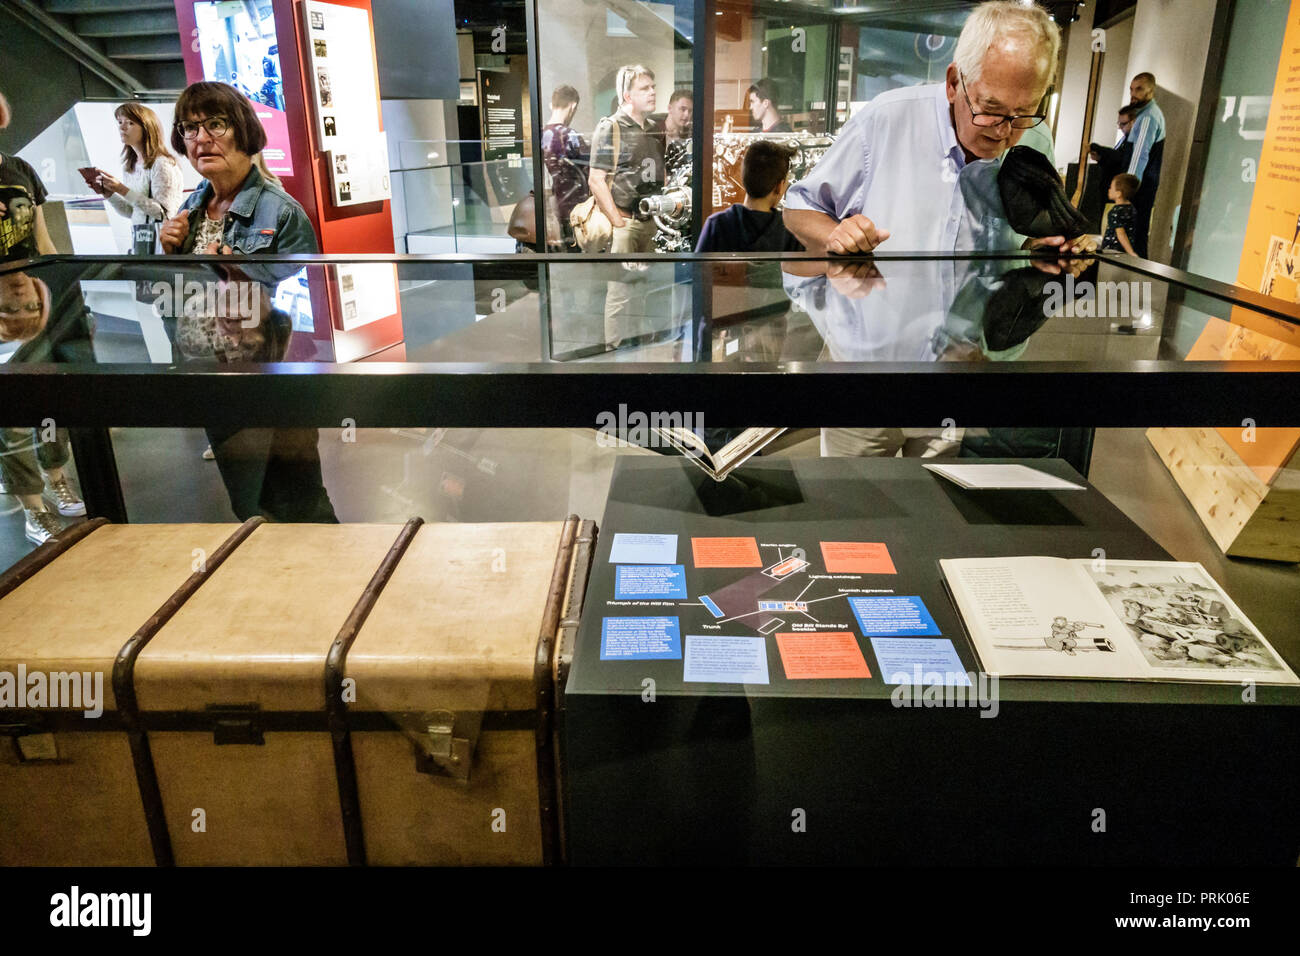 London England United Kingdom Great Britain Southwark Imperial War Museum military war weapons archives inside interior exhibit artifact display man l - Stock Image